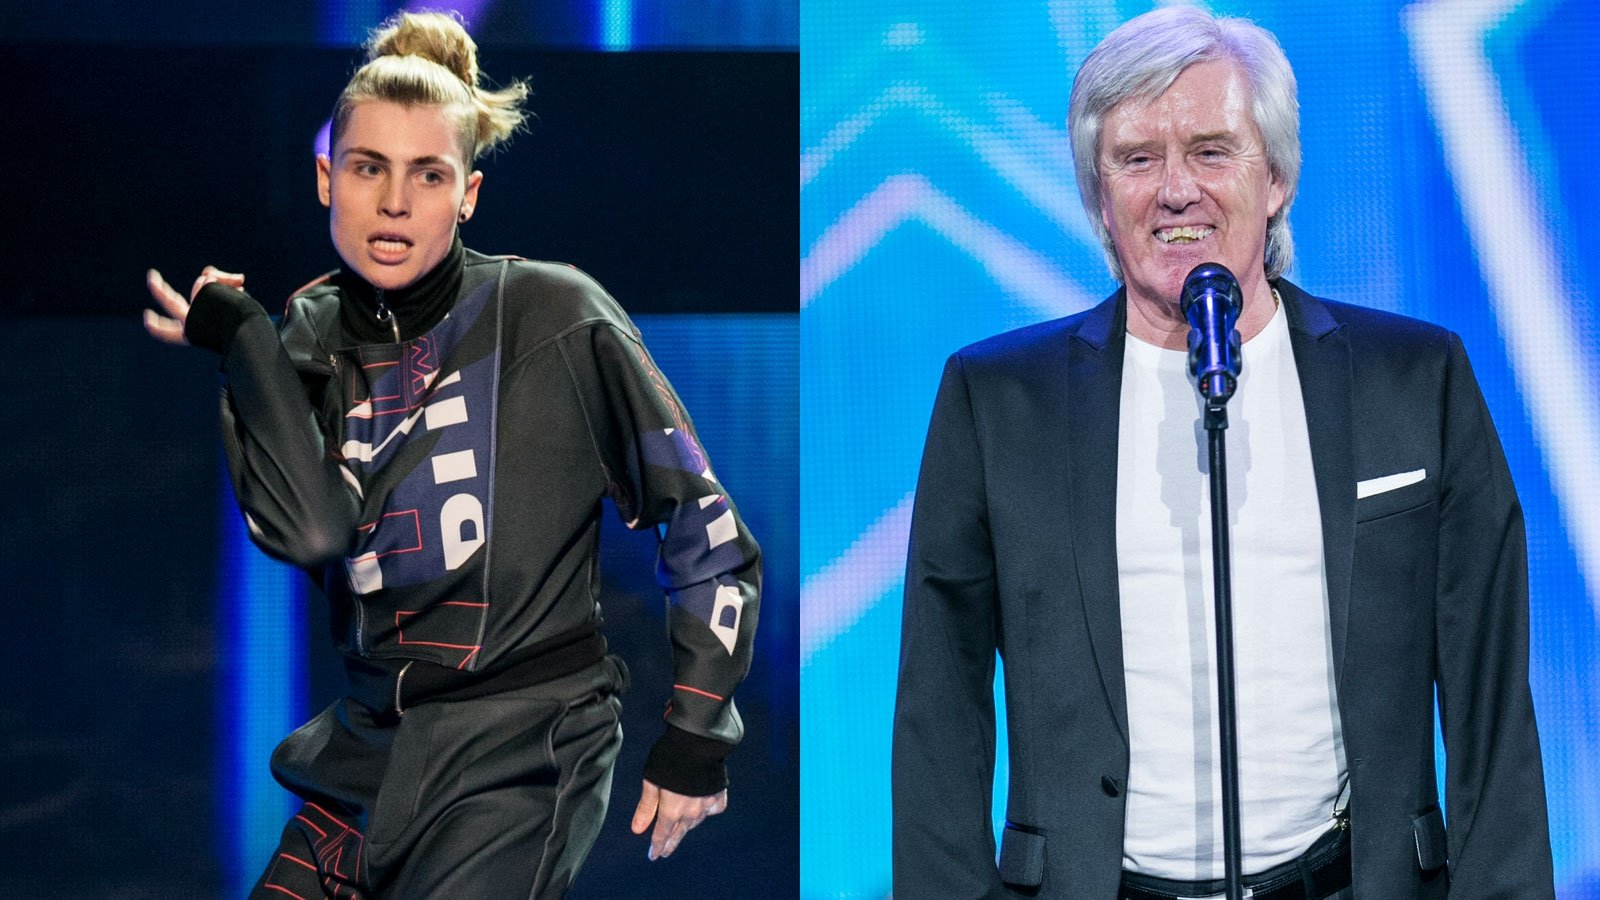 TWO wild cards announced for Ireland's Got Talent final